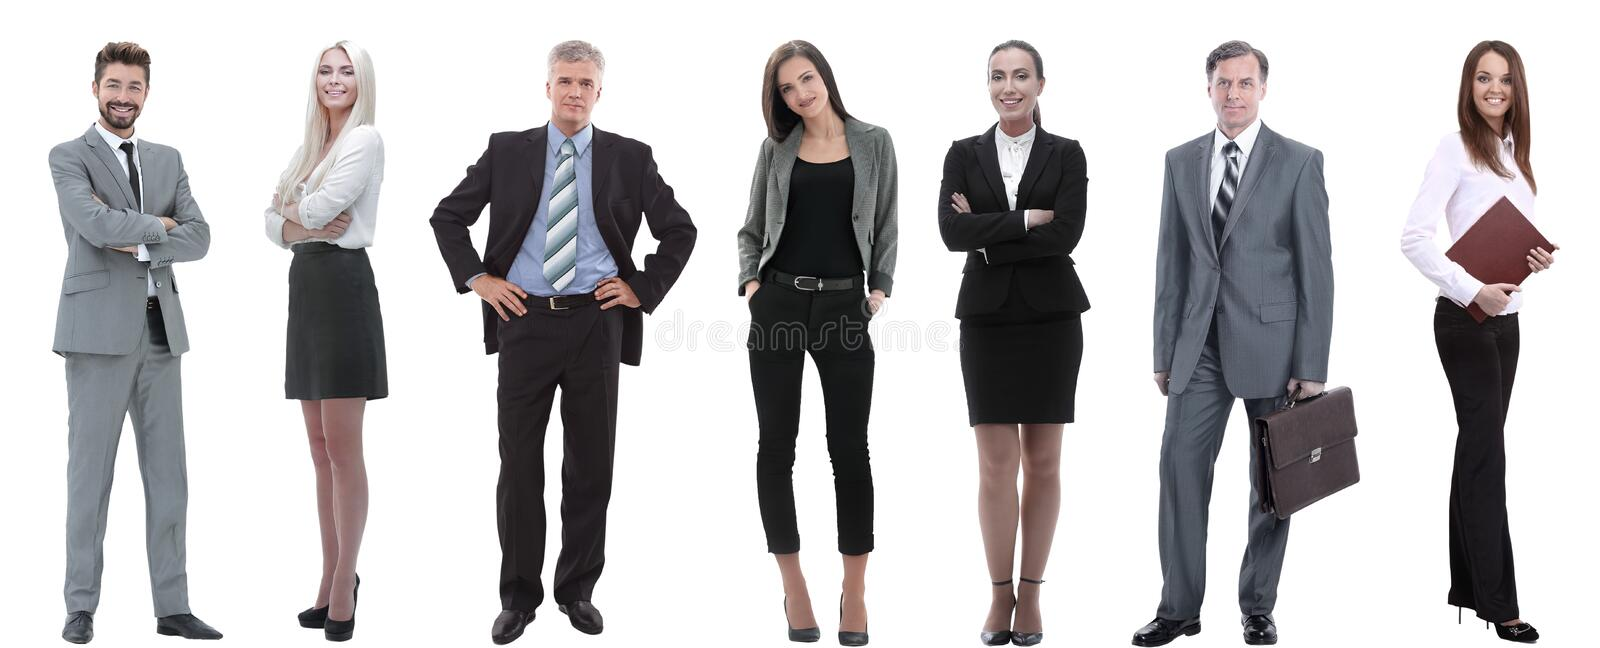 Group of successful business people standing in a row. royalty free stock image